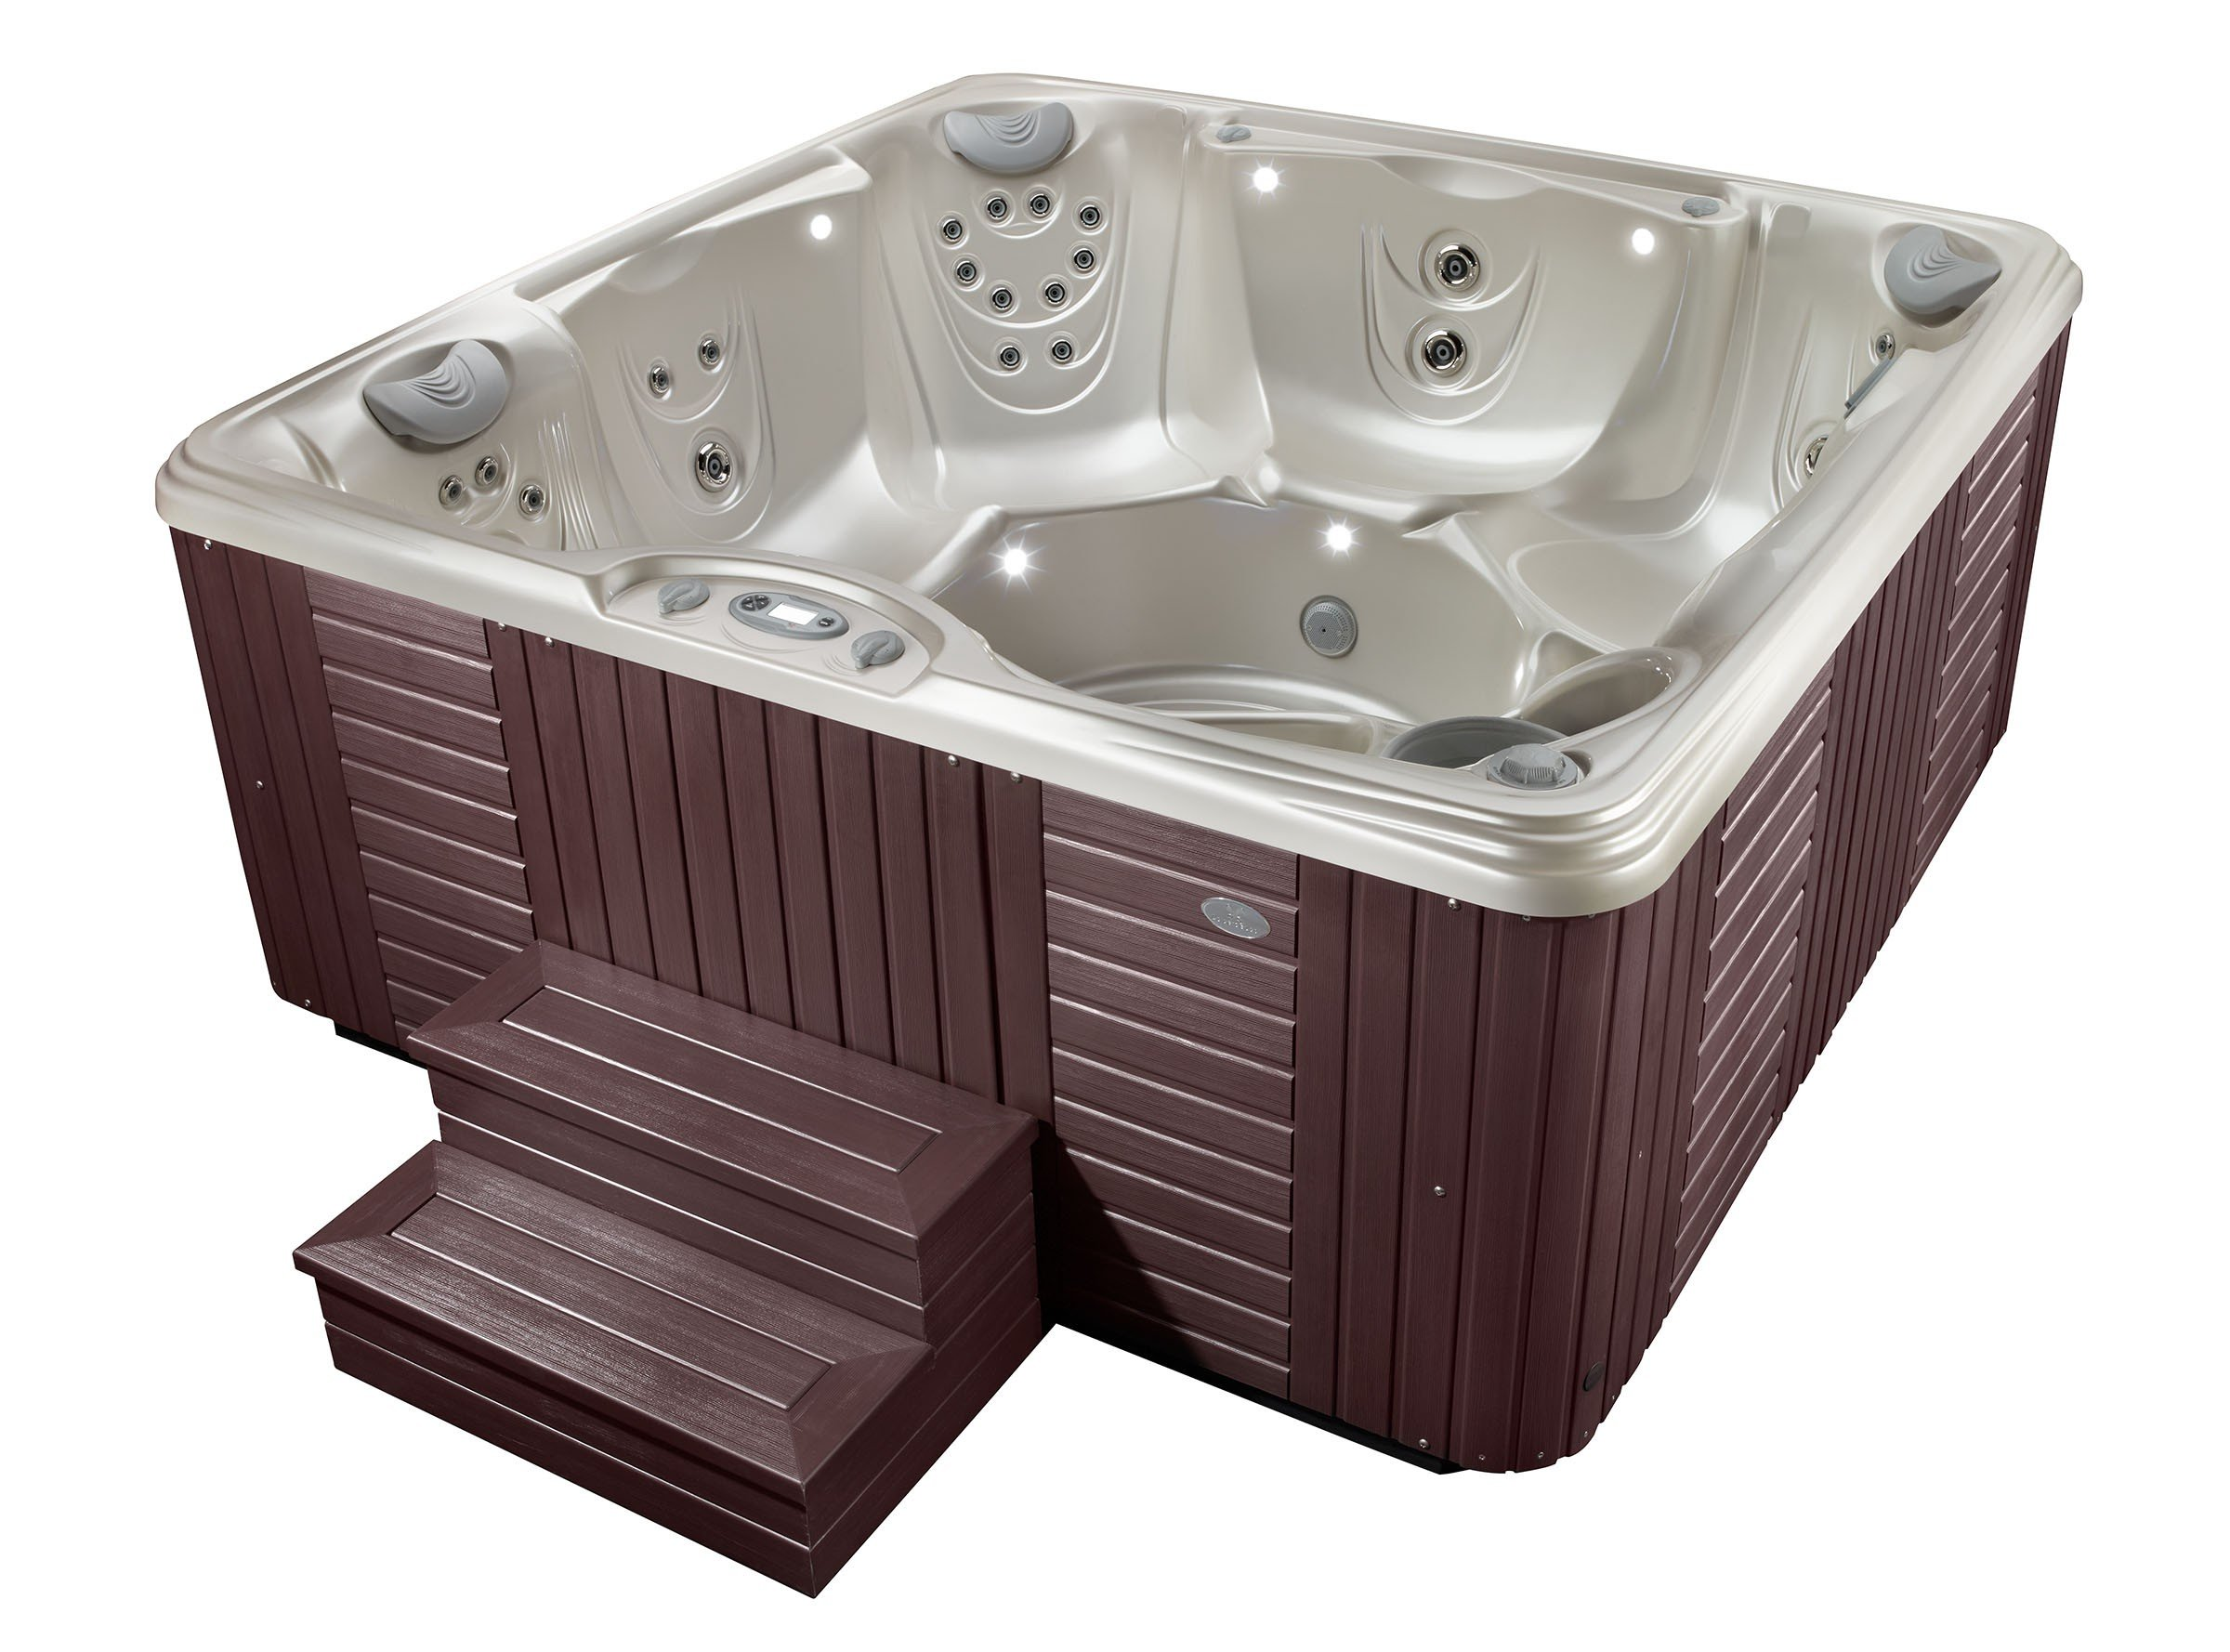 tubs stairs color colorado steps rust red tub redwood and plastic denver handi hot spas